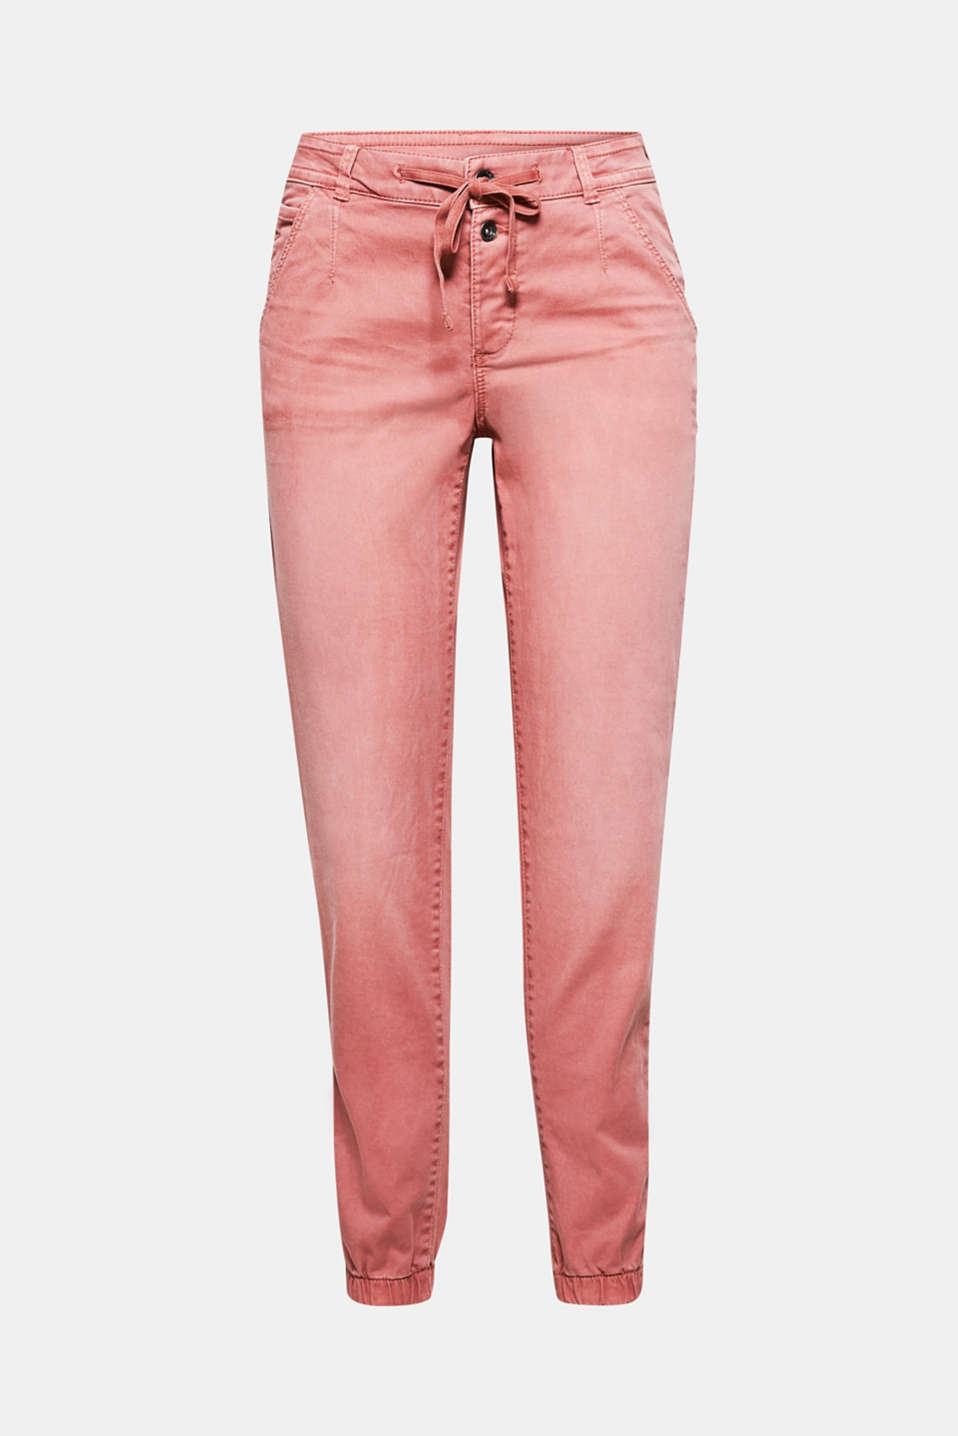 The drawstring waistband with a button placket and the elasticated leg cuffs make these trousers so wonderfully casual!